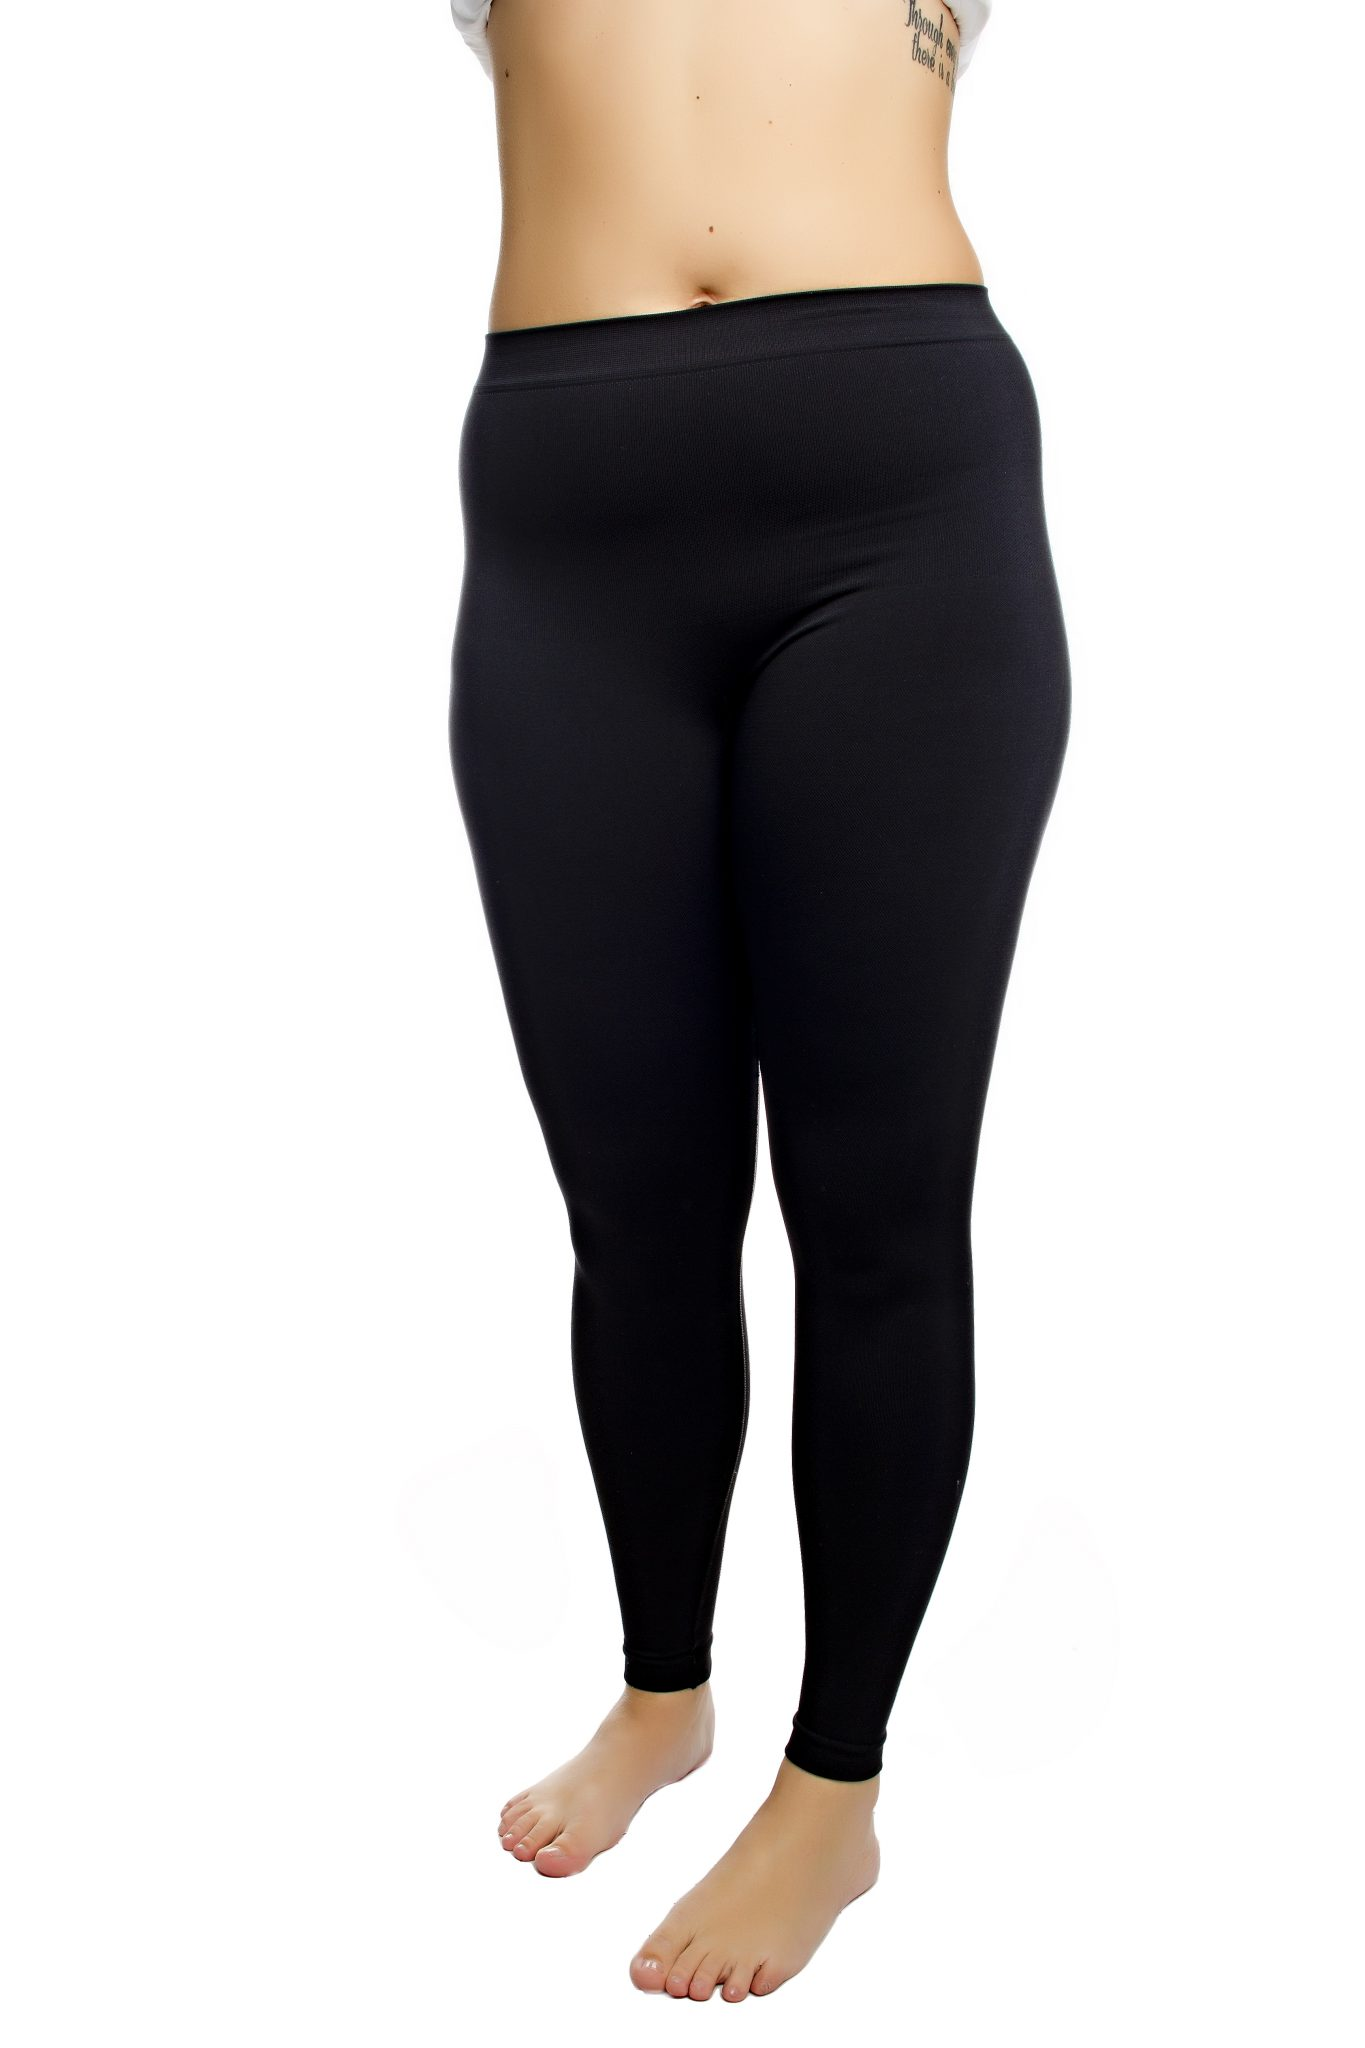 chaffree coolmax black leggings plus size up to a size 24